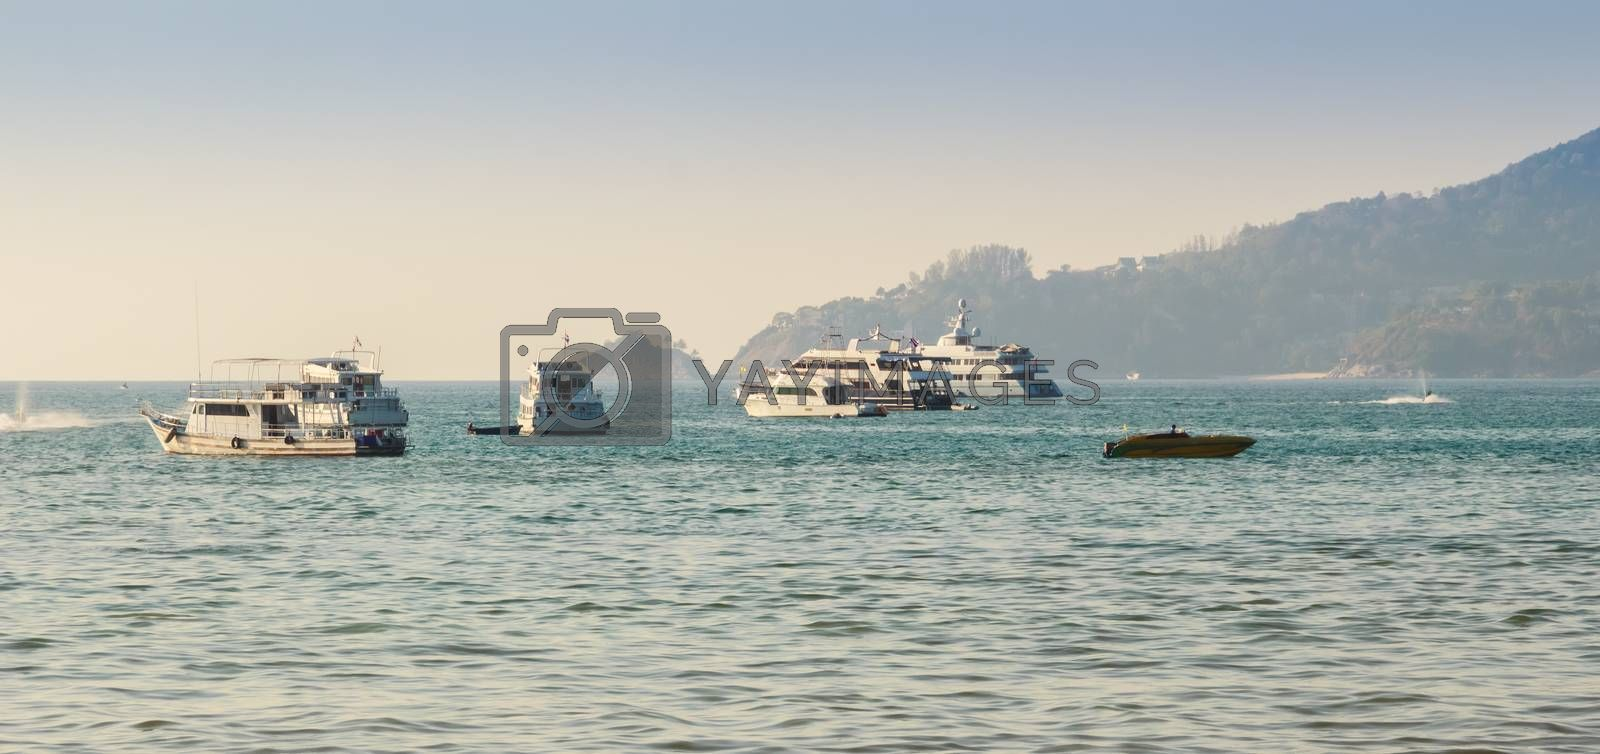 Beautiful scenery view of Patong beach in blue sky daylight and mountain background with local fisherman long tail boats and tourist luxury cruises. Patong is the popular beach in Phuket, Thailand.